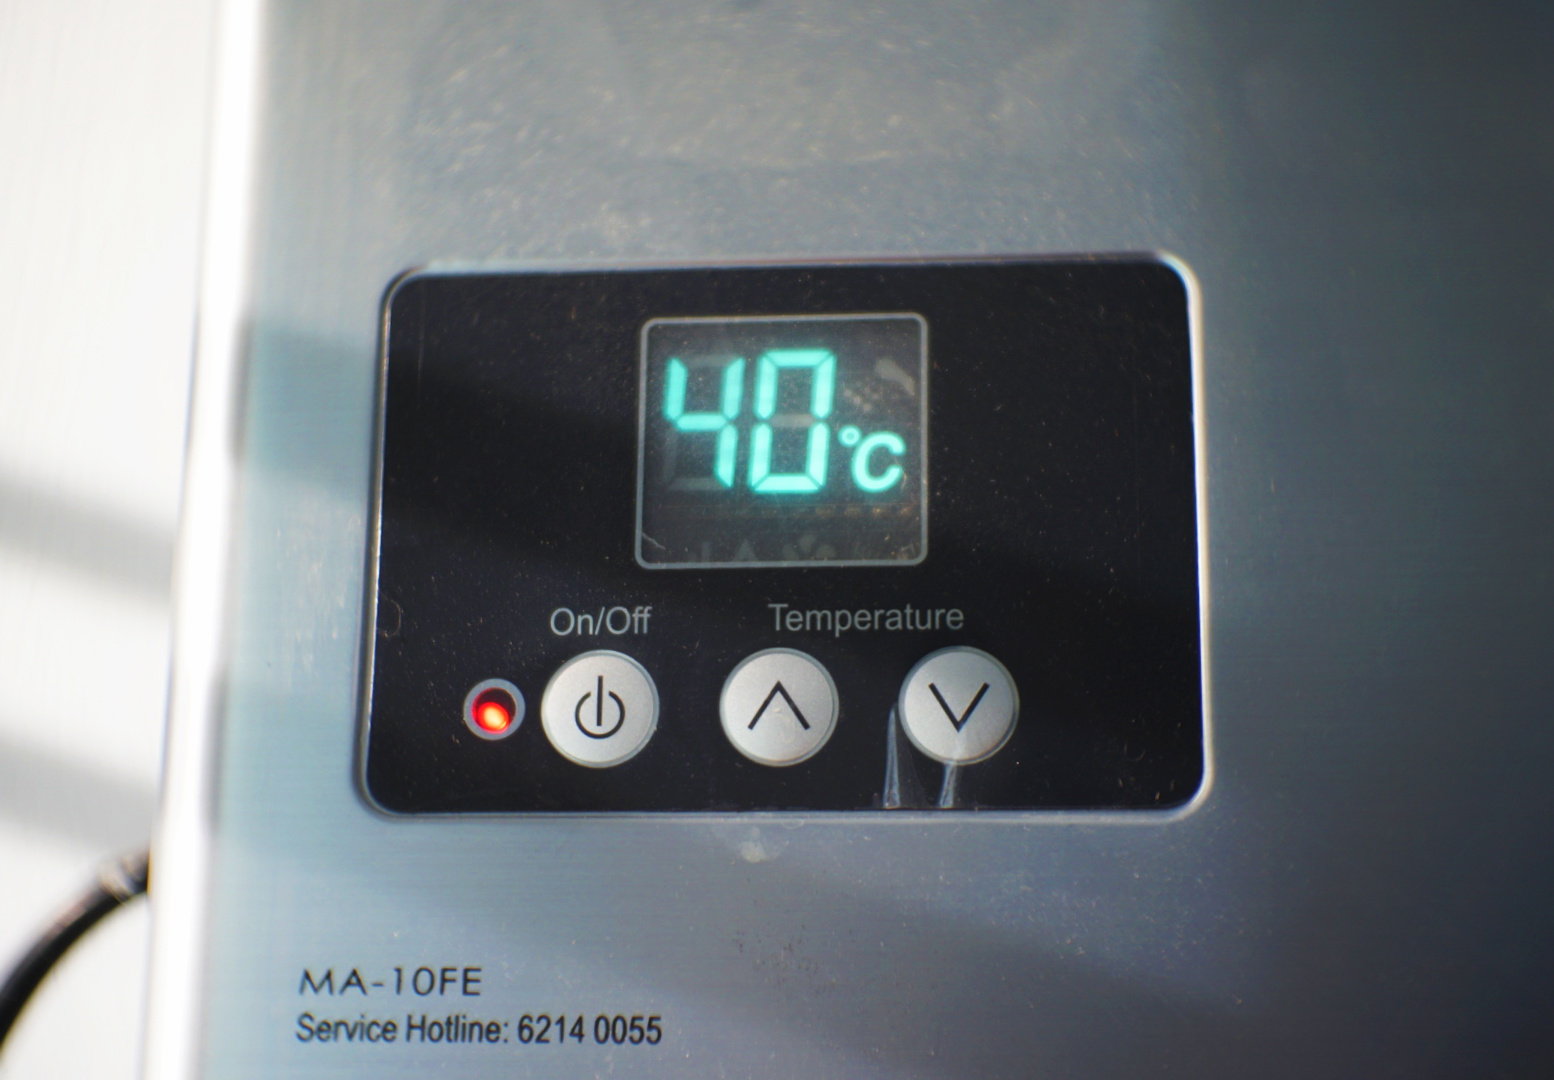 Temperature adjustment option on the LED display of the Macro MA-10FE, which allows temperature adjustments in 1°C increments from 36°C all the way to 60°C.